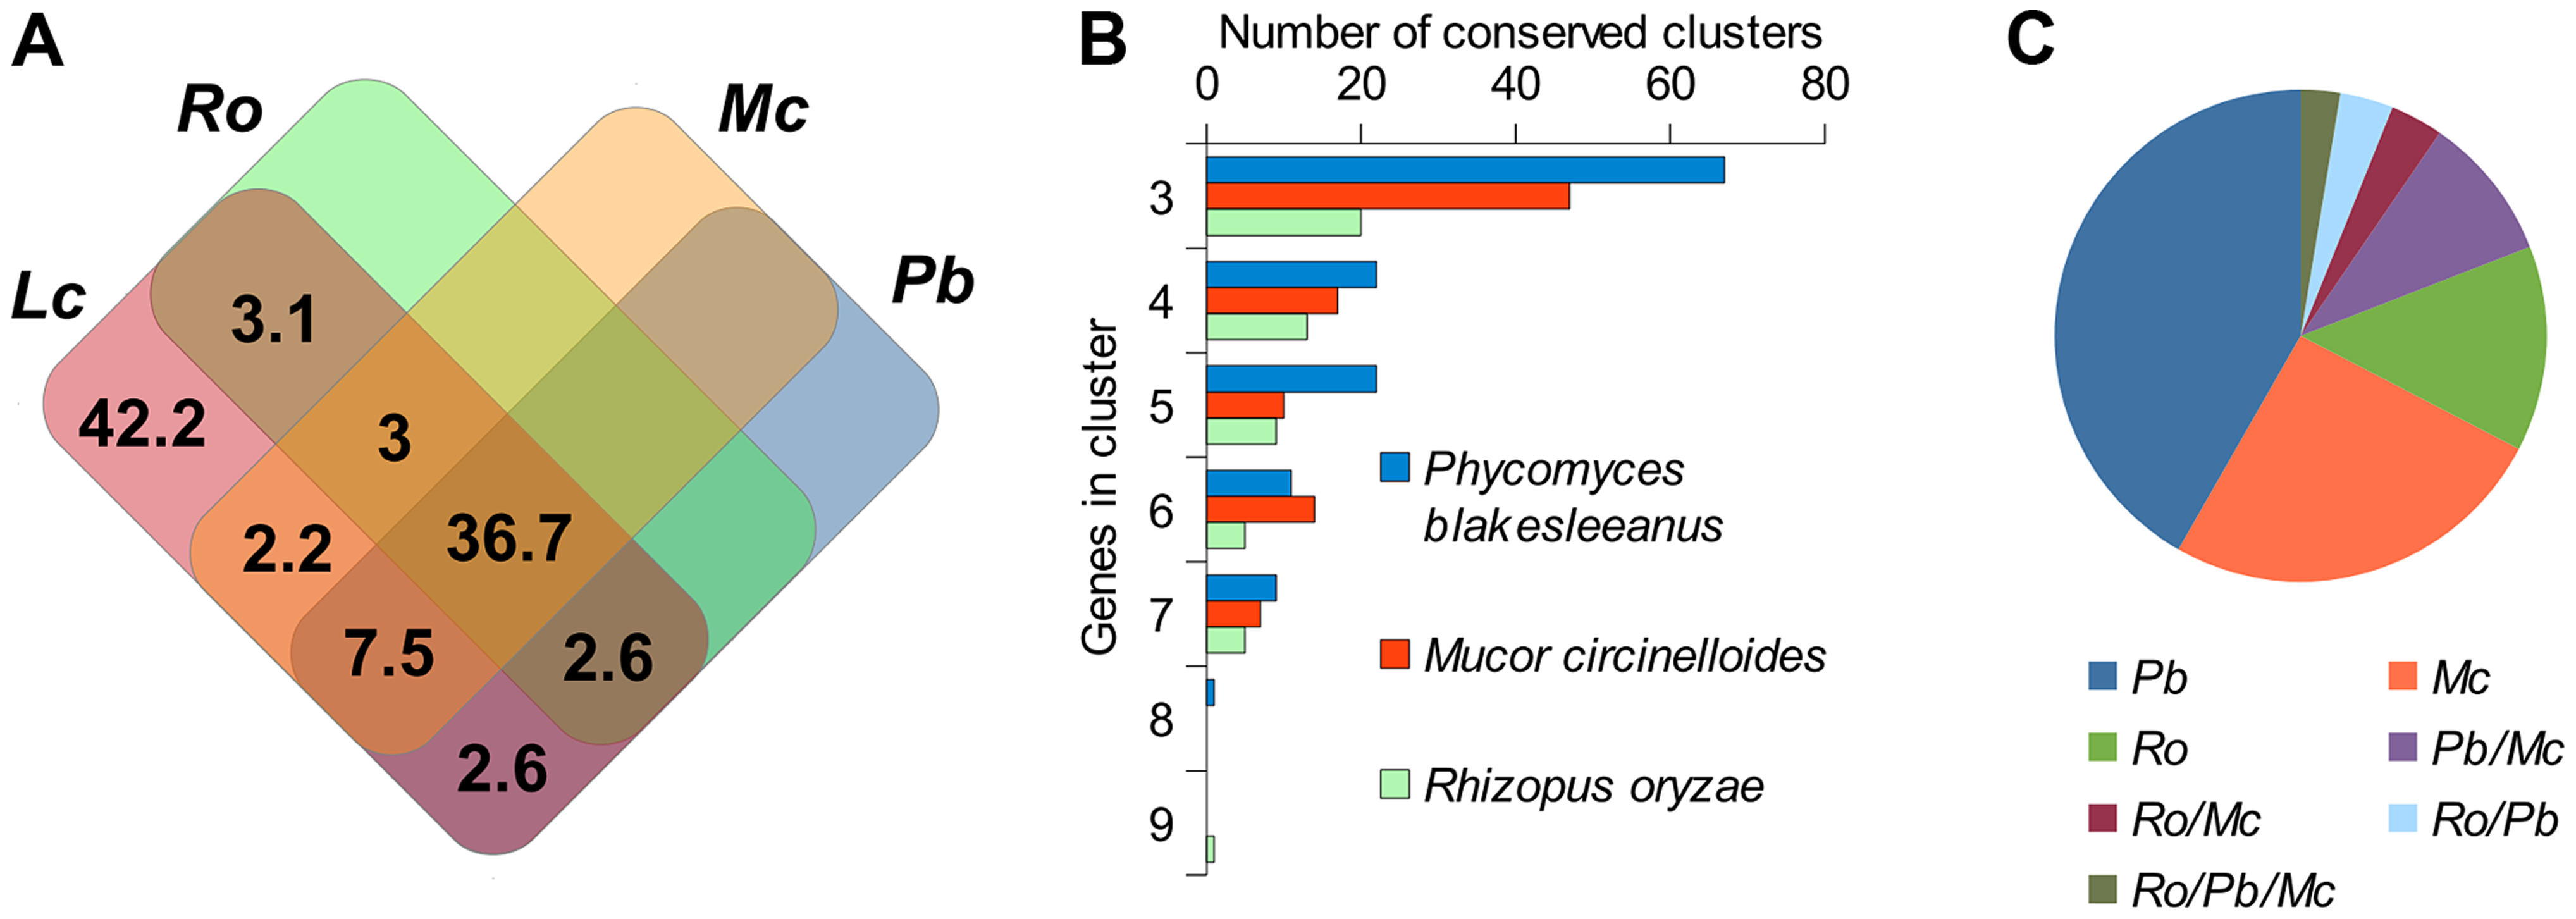 Conserved regions of the <i>L. corymbifera</i> genome with other mucoralean genomes.